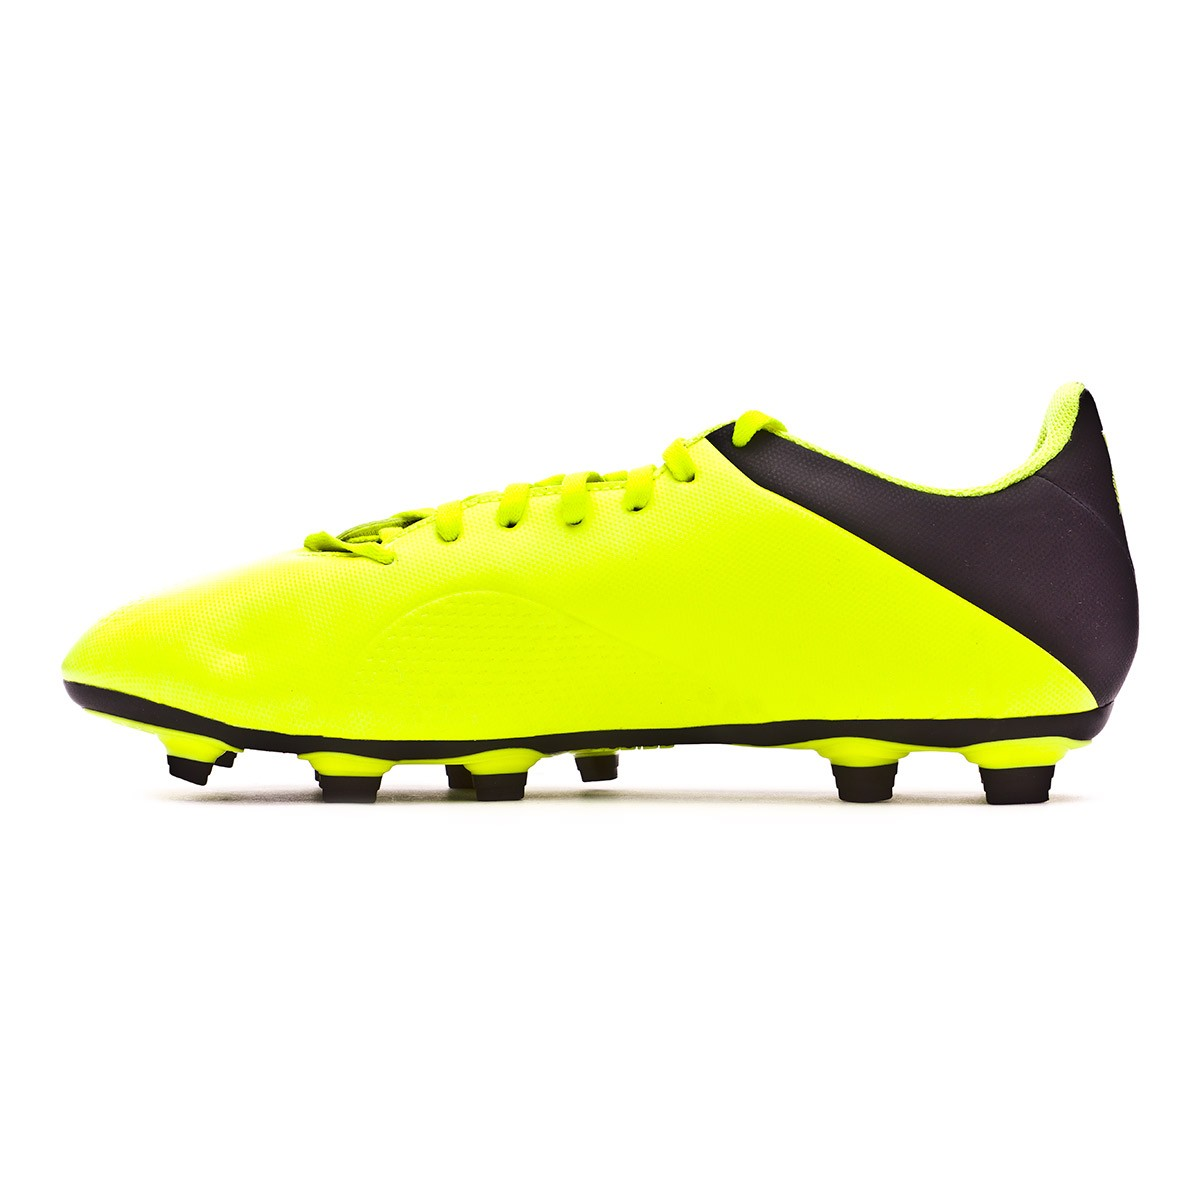 9e6af4267 Football Boots adidas X 18.4 FG Solar yellow-Core black-White - Football  store Fútbol Emotion